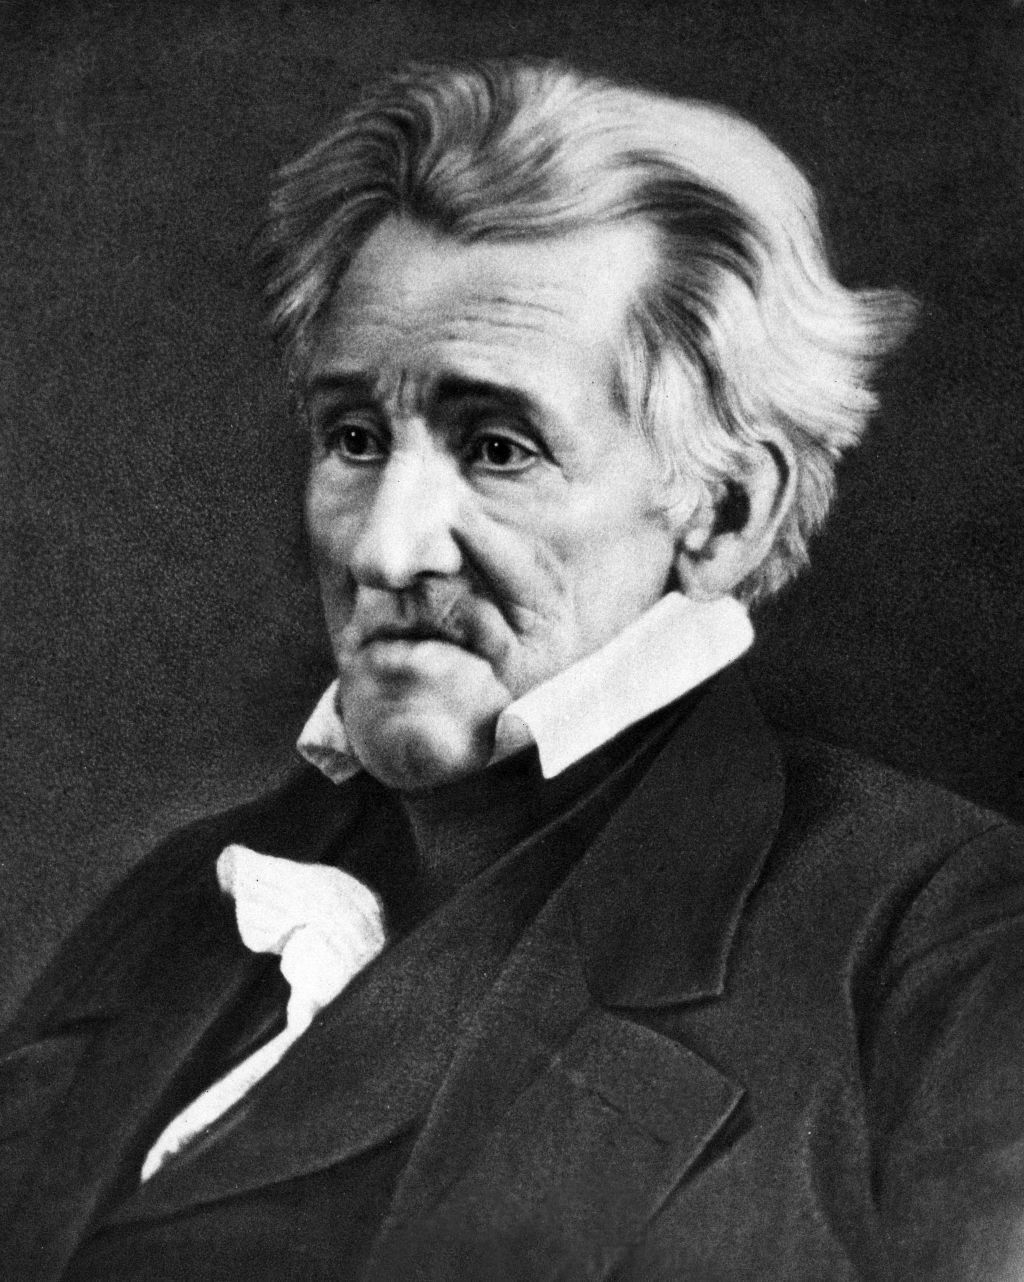 was andrew jackson a hero or a villain essay 91 121 113 106 was andrew jackson a hero or a villain essay